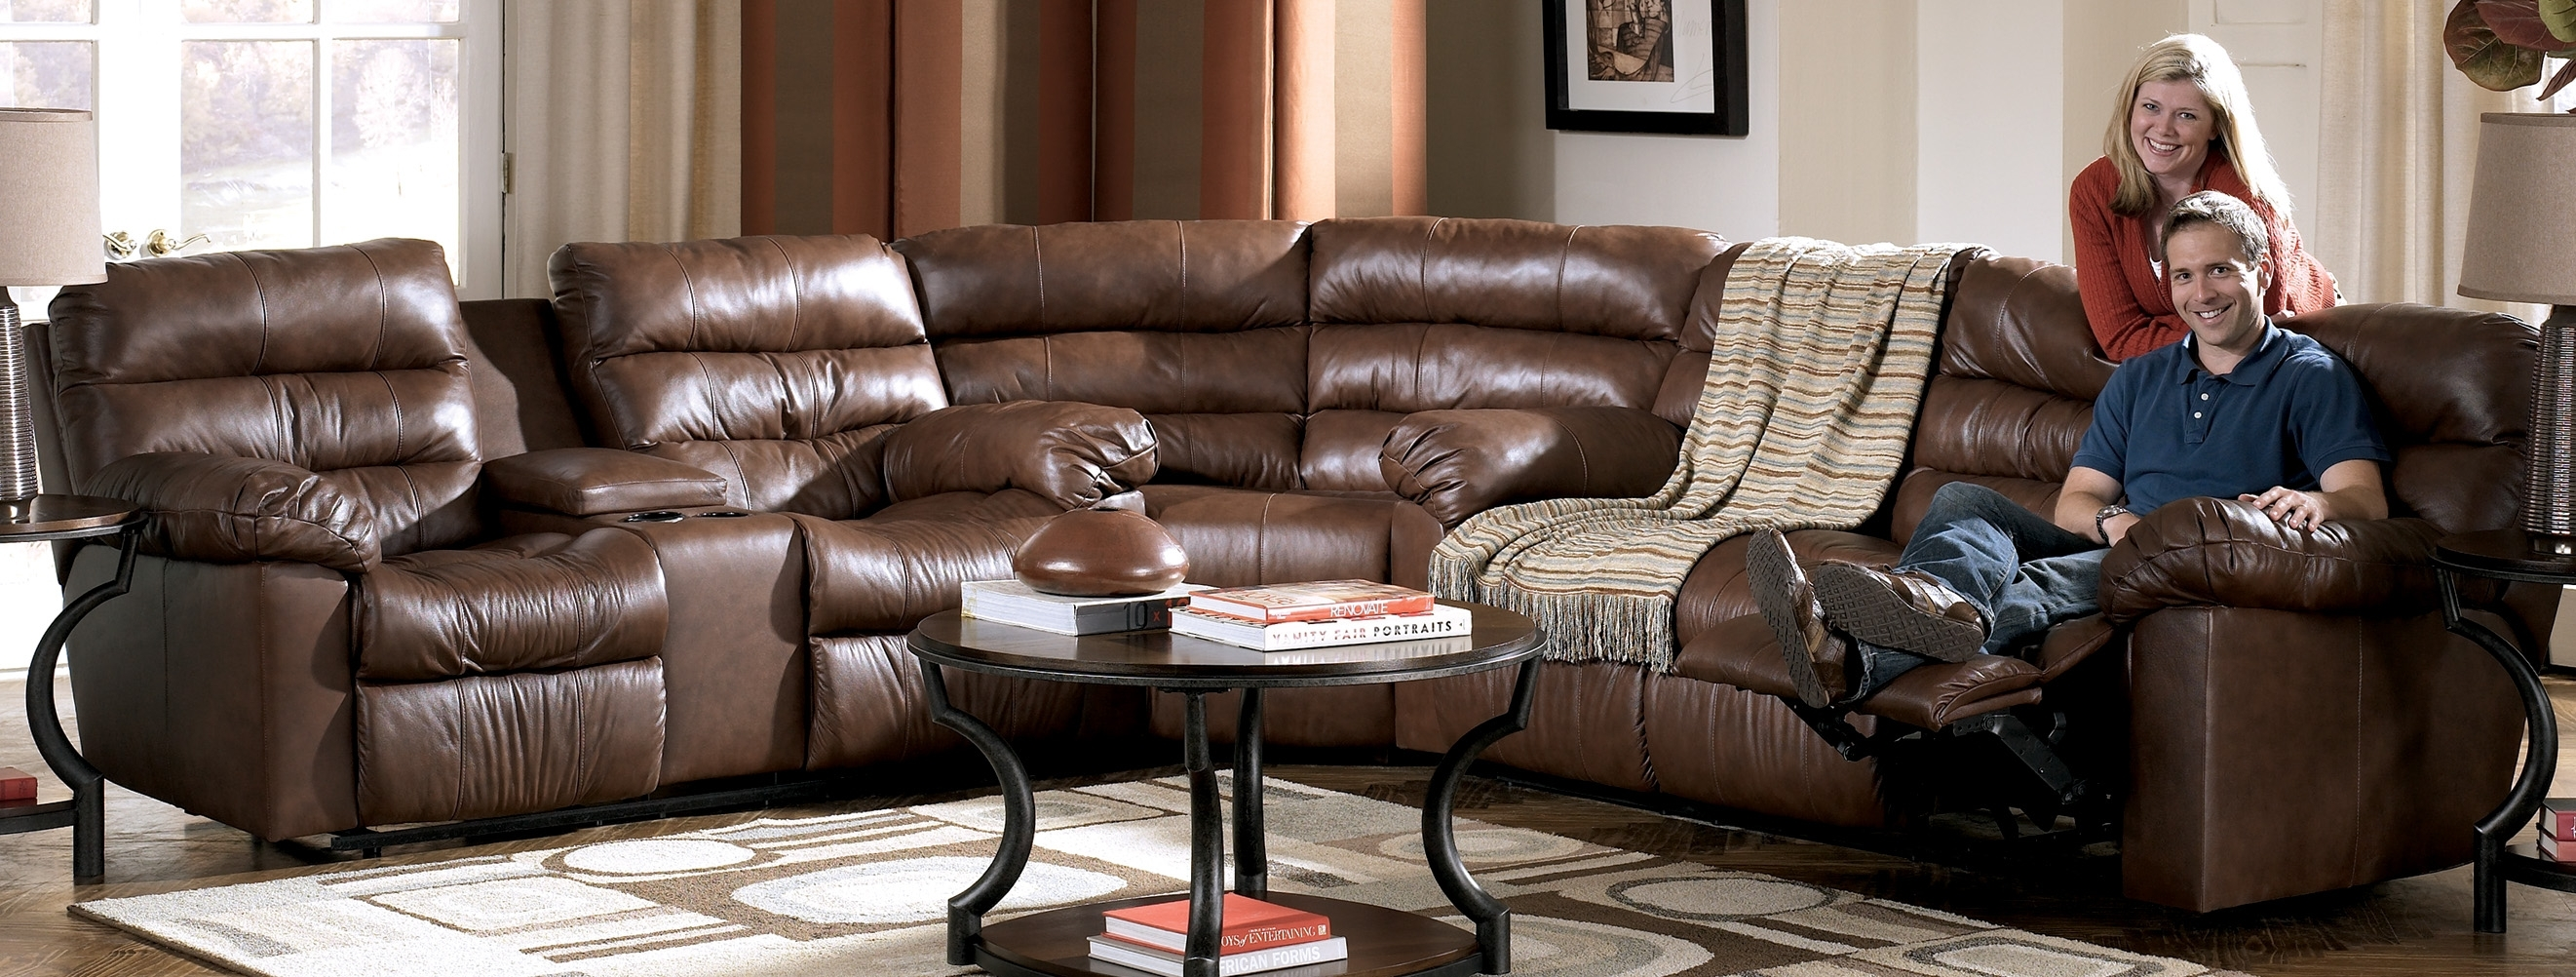 Reclining Leather Sectional Sofa With 4 Recliners And A Console In Sectional Sofas With Consoles (View 10 of 10)